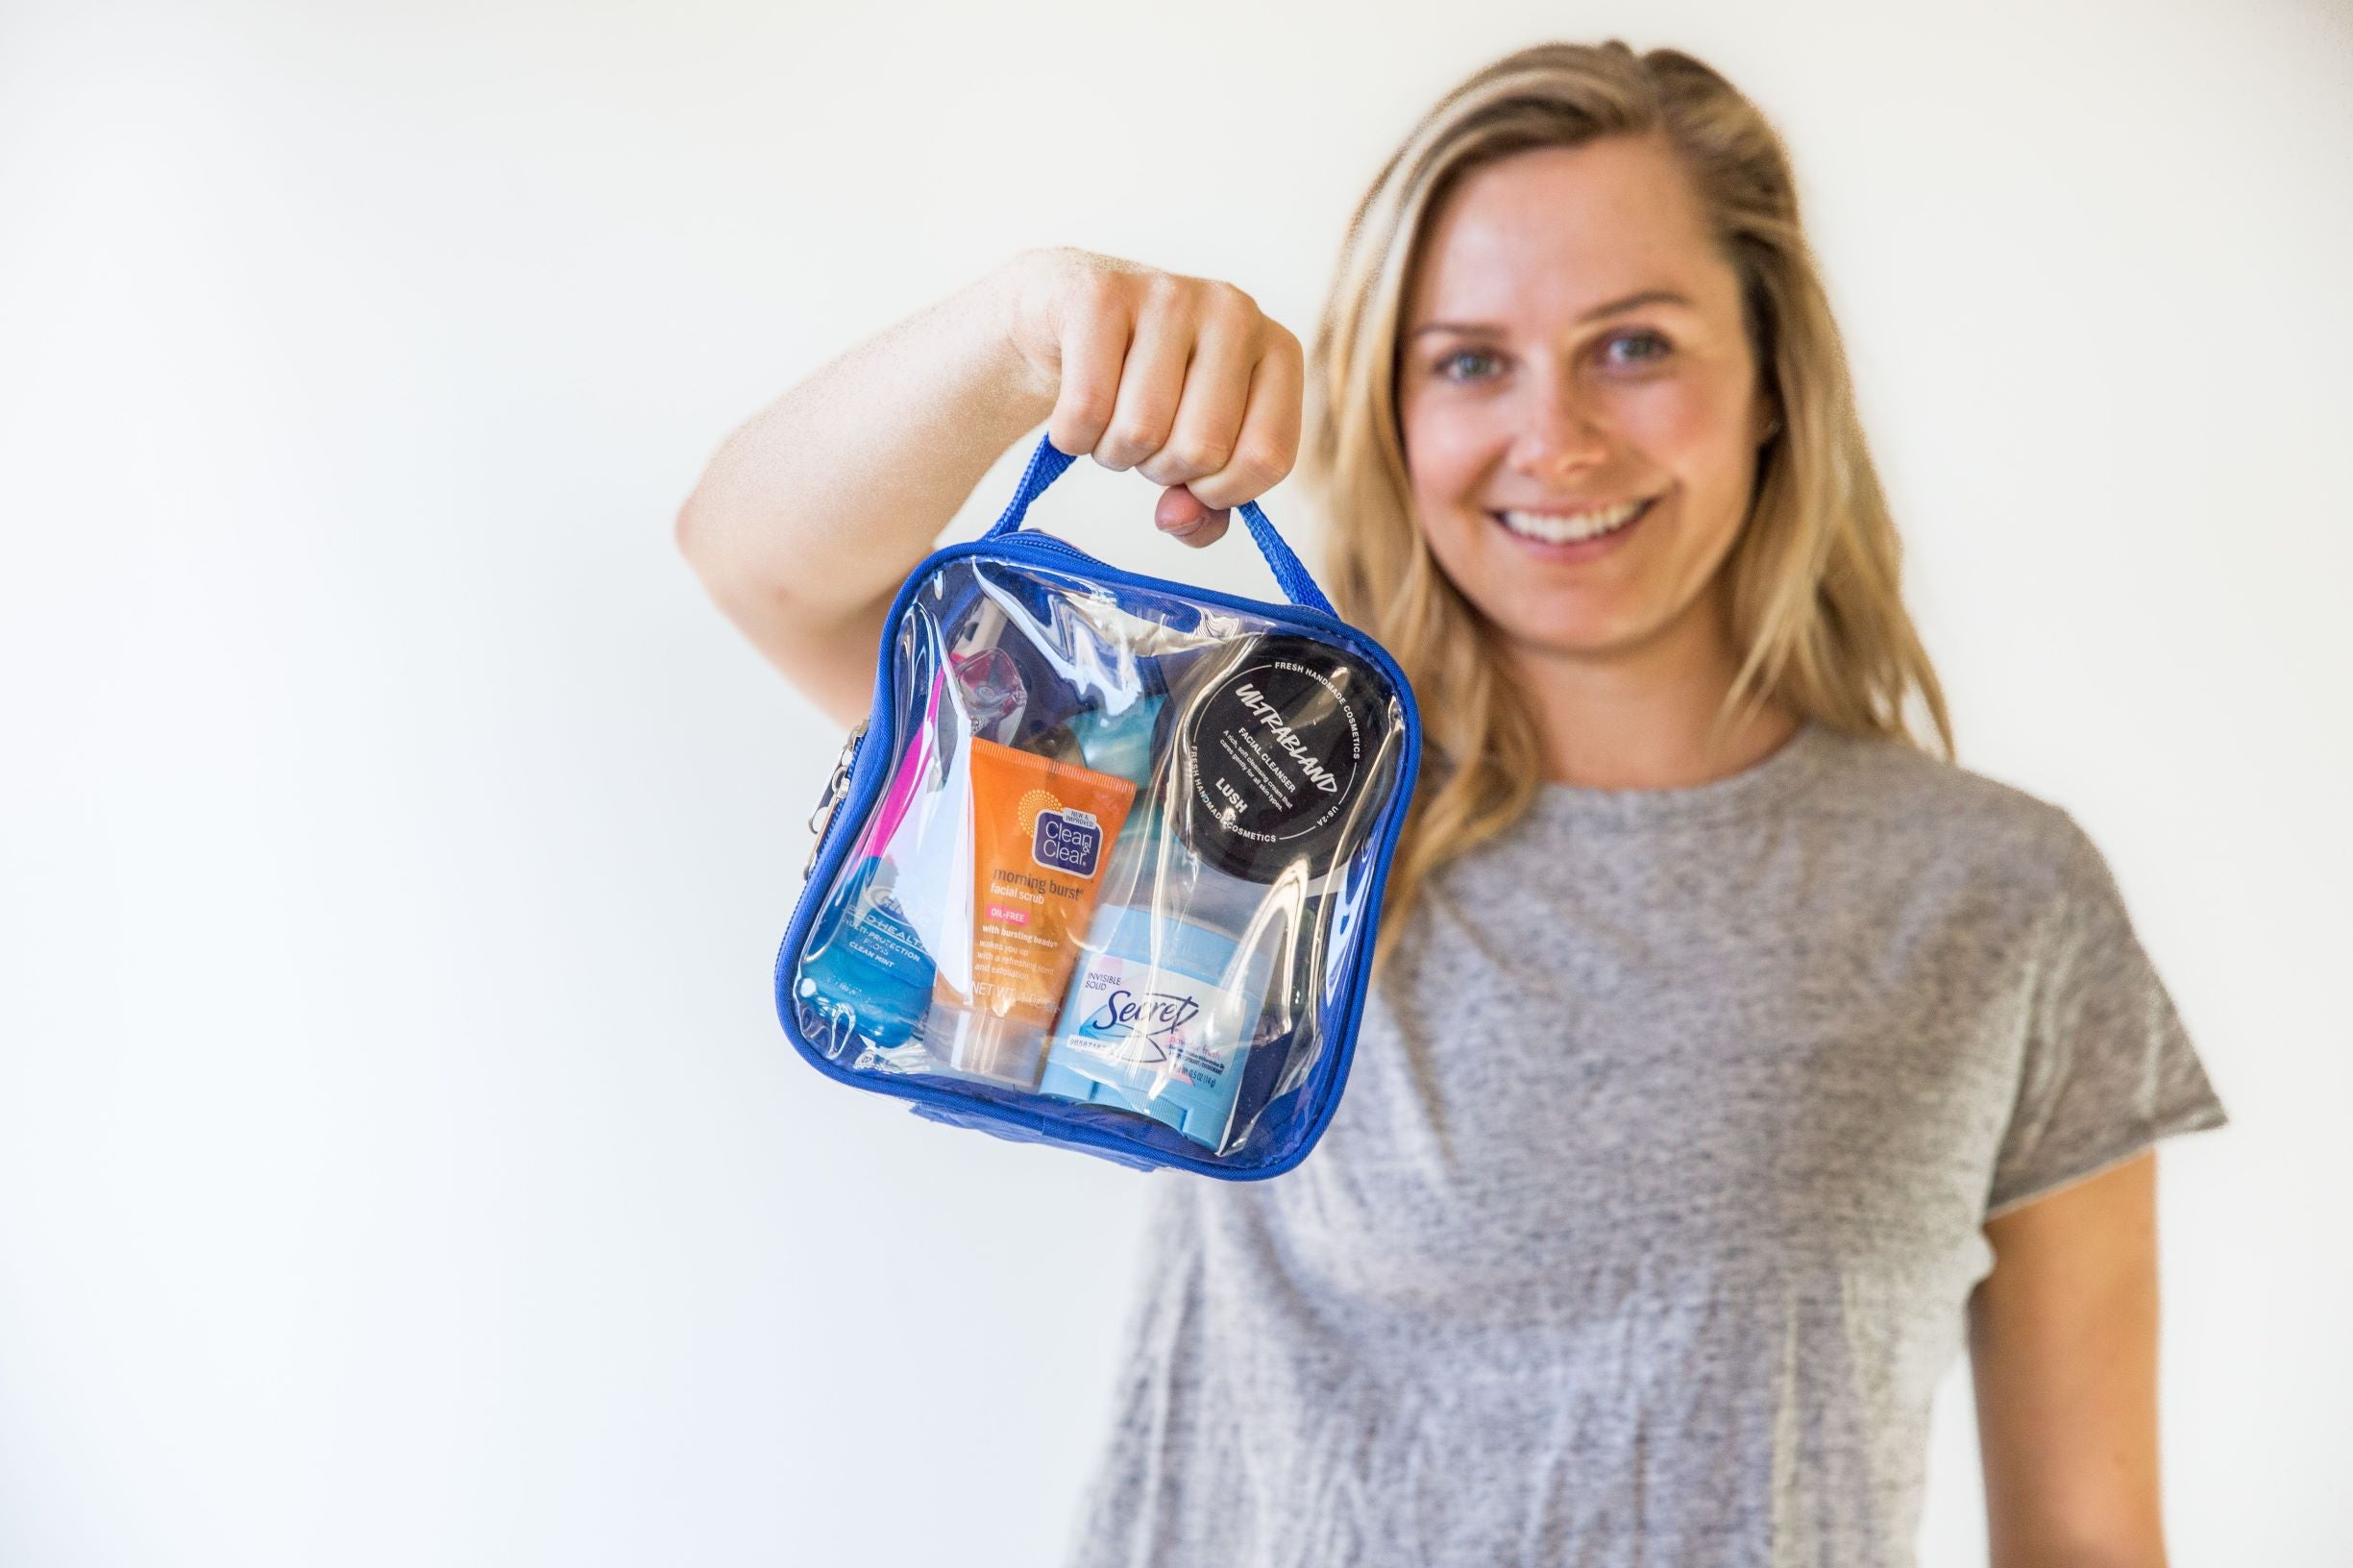 Tali holding a royal blue quart size bag packed with toiletries